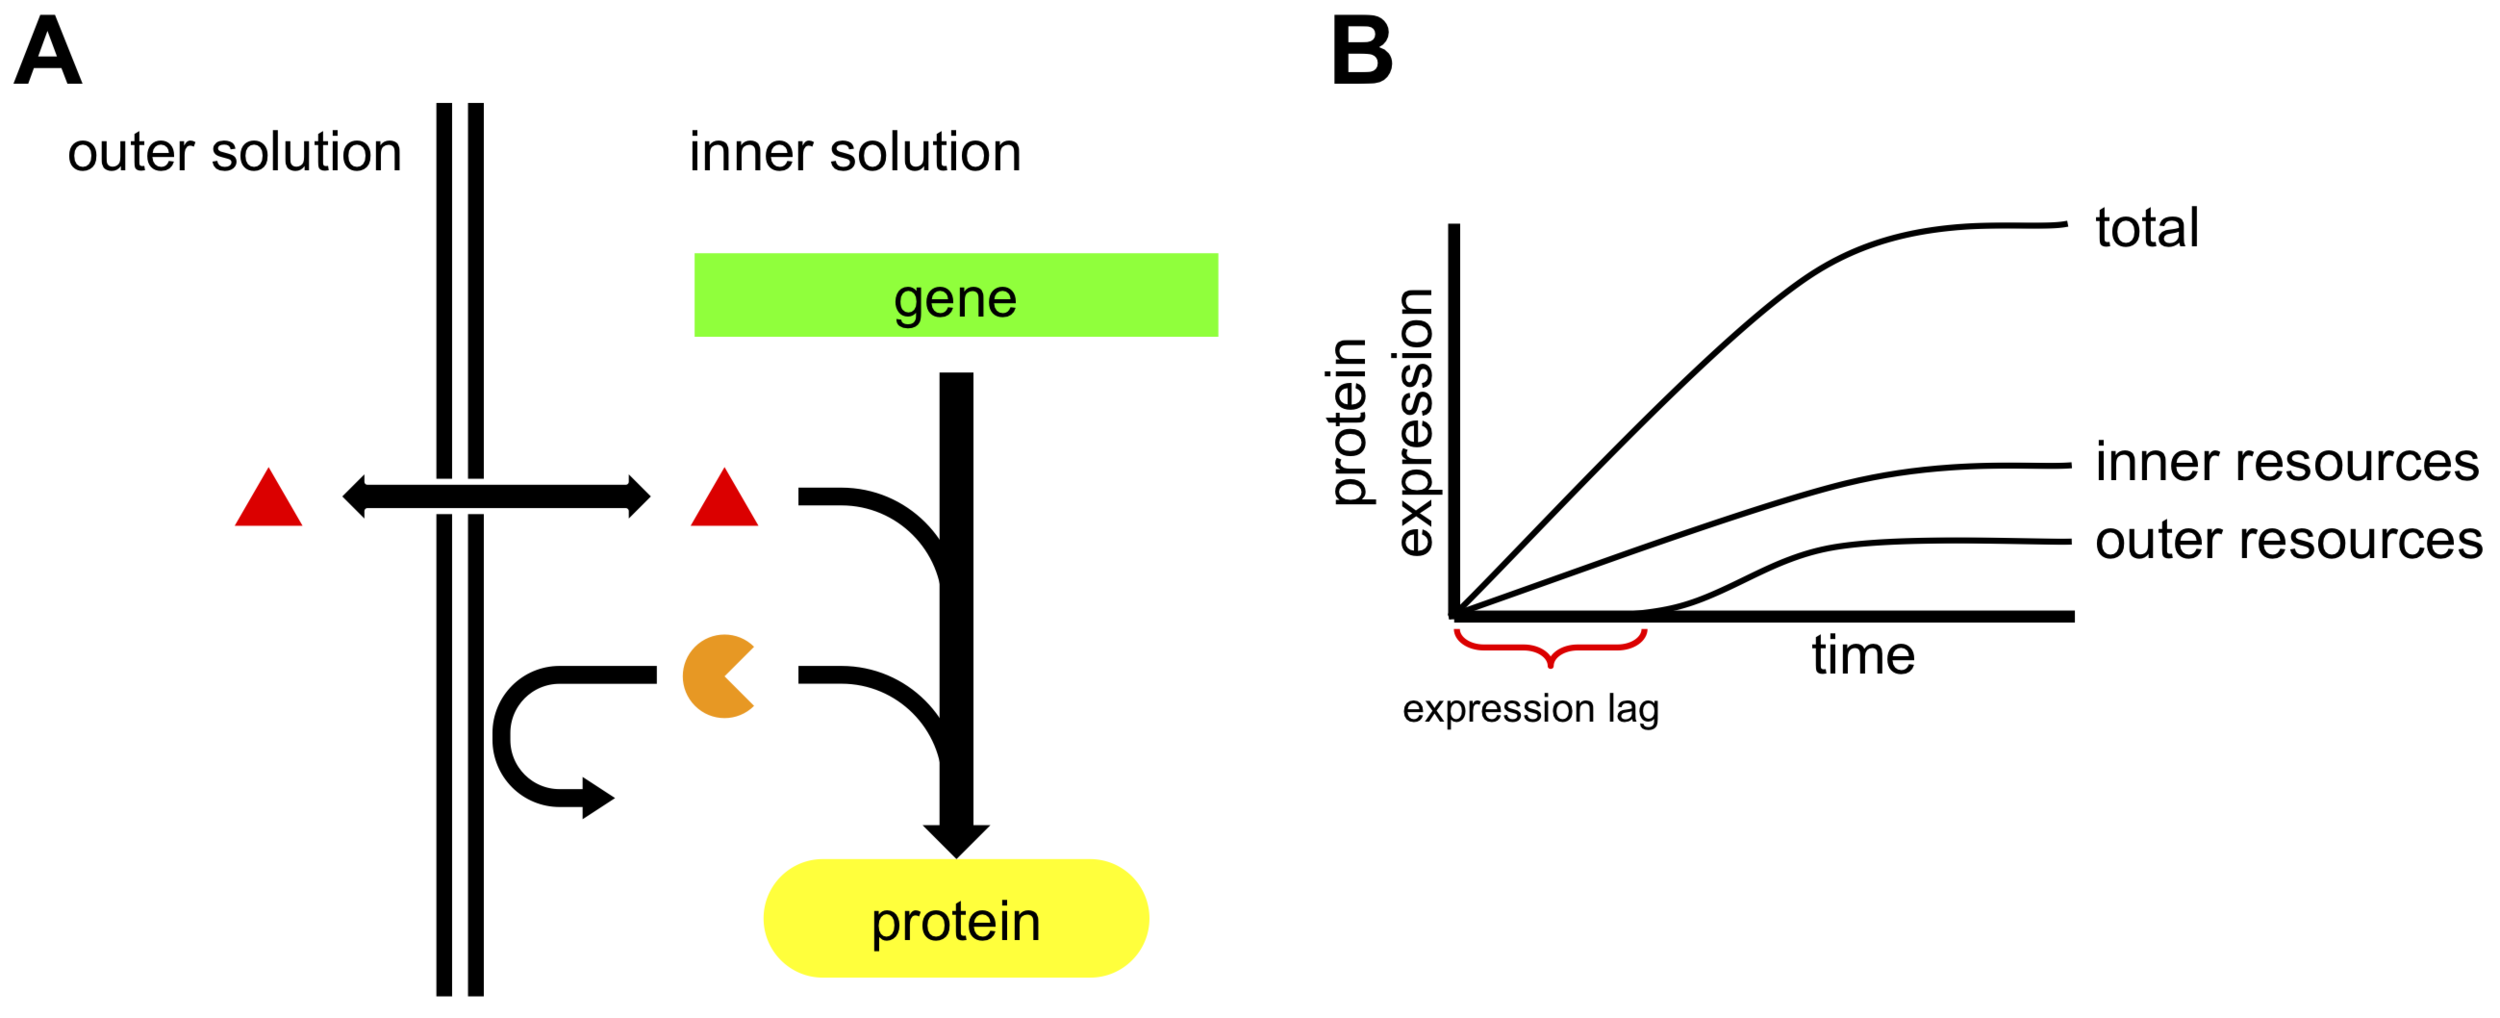 Figure: Resource location (internal or external) affects gene expression behavior.  (A) Gene expression is affected by the encapsulated (orange circular sector) and external (red triangle) molecular resources. (B) The gene expression transient is the sum of two components: one controlled by the internal resource concentration and one controlled by external resource concentration. The expression transient due to external resources should experience a delay (labeled here as expression lag) related to the membrane transport properties.